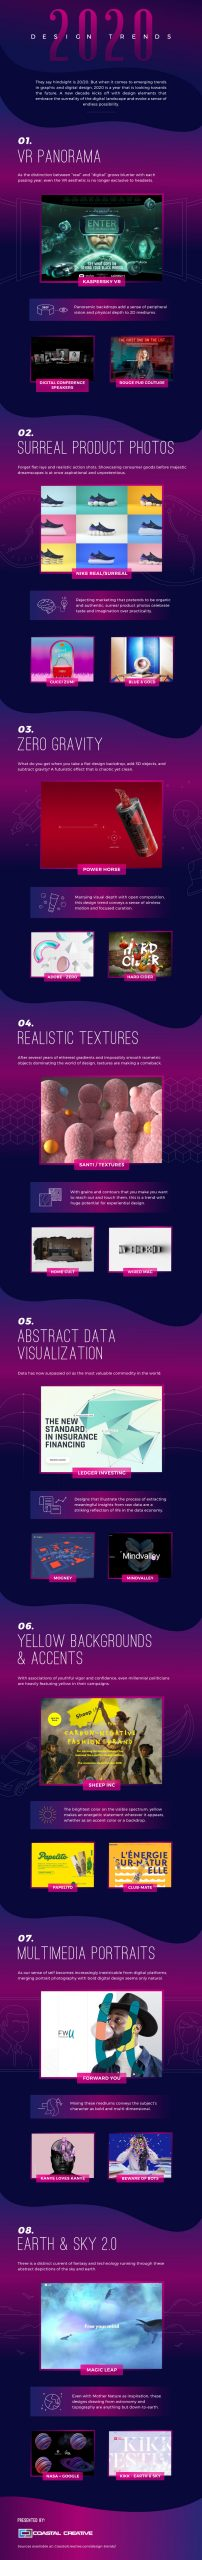 The Digital and Graphic Design Trends of 2020 Infographic Image